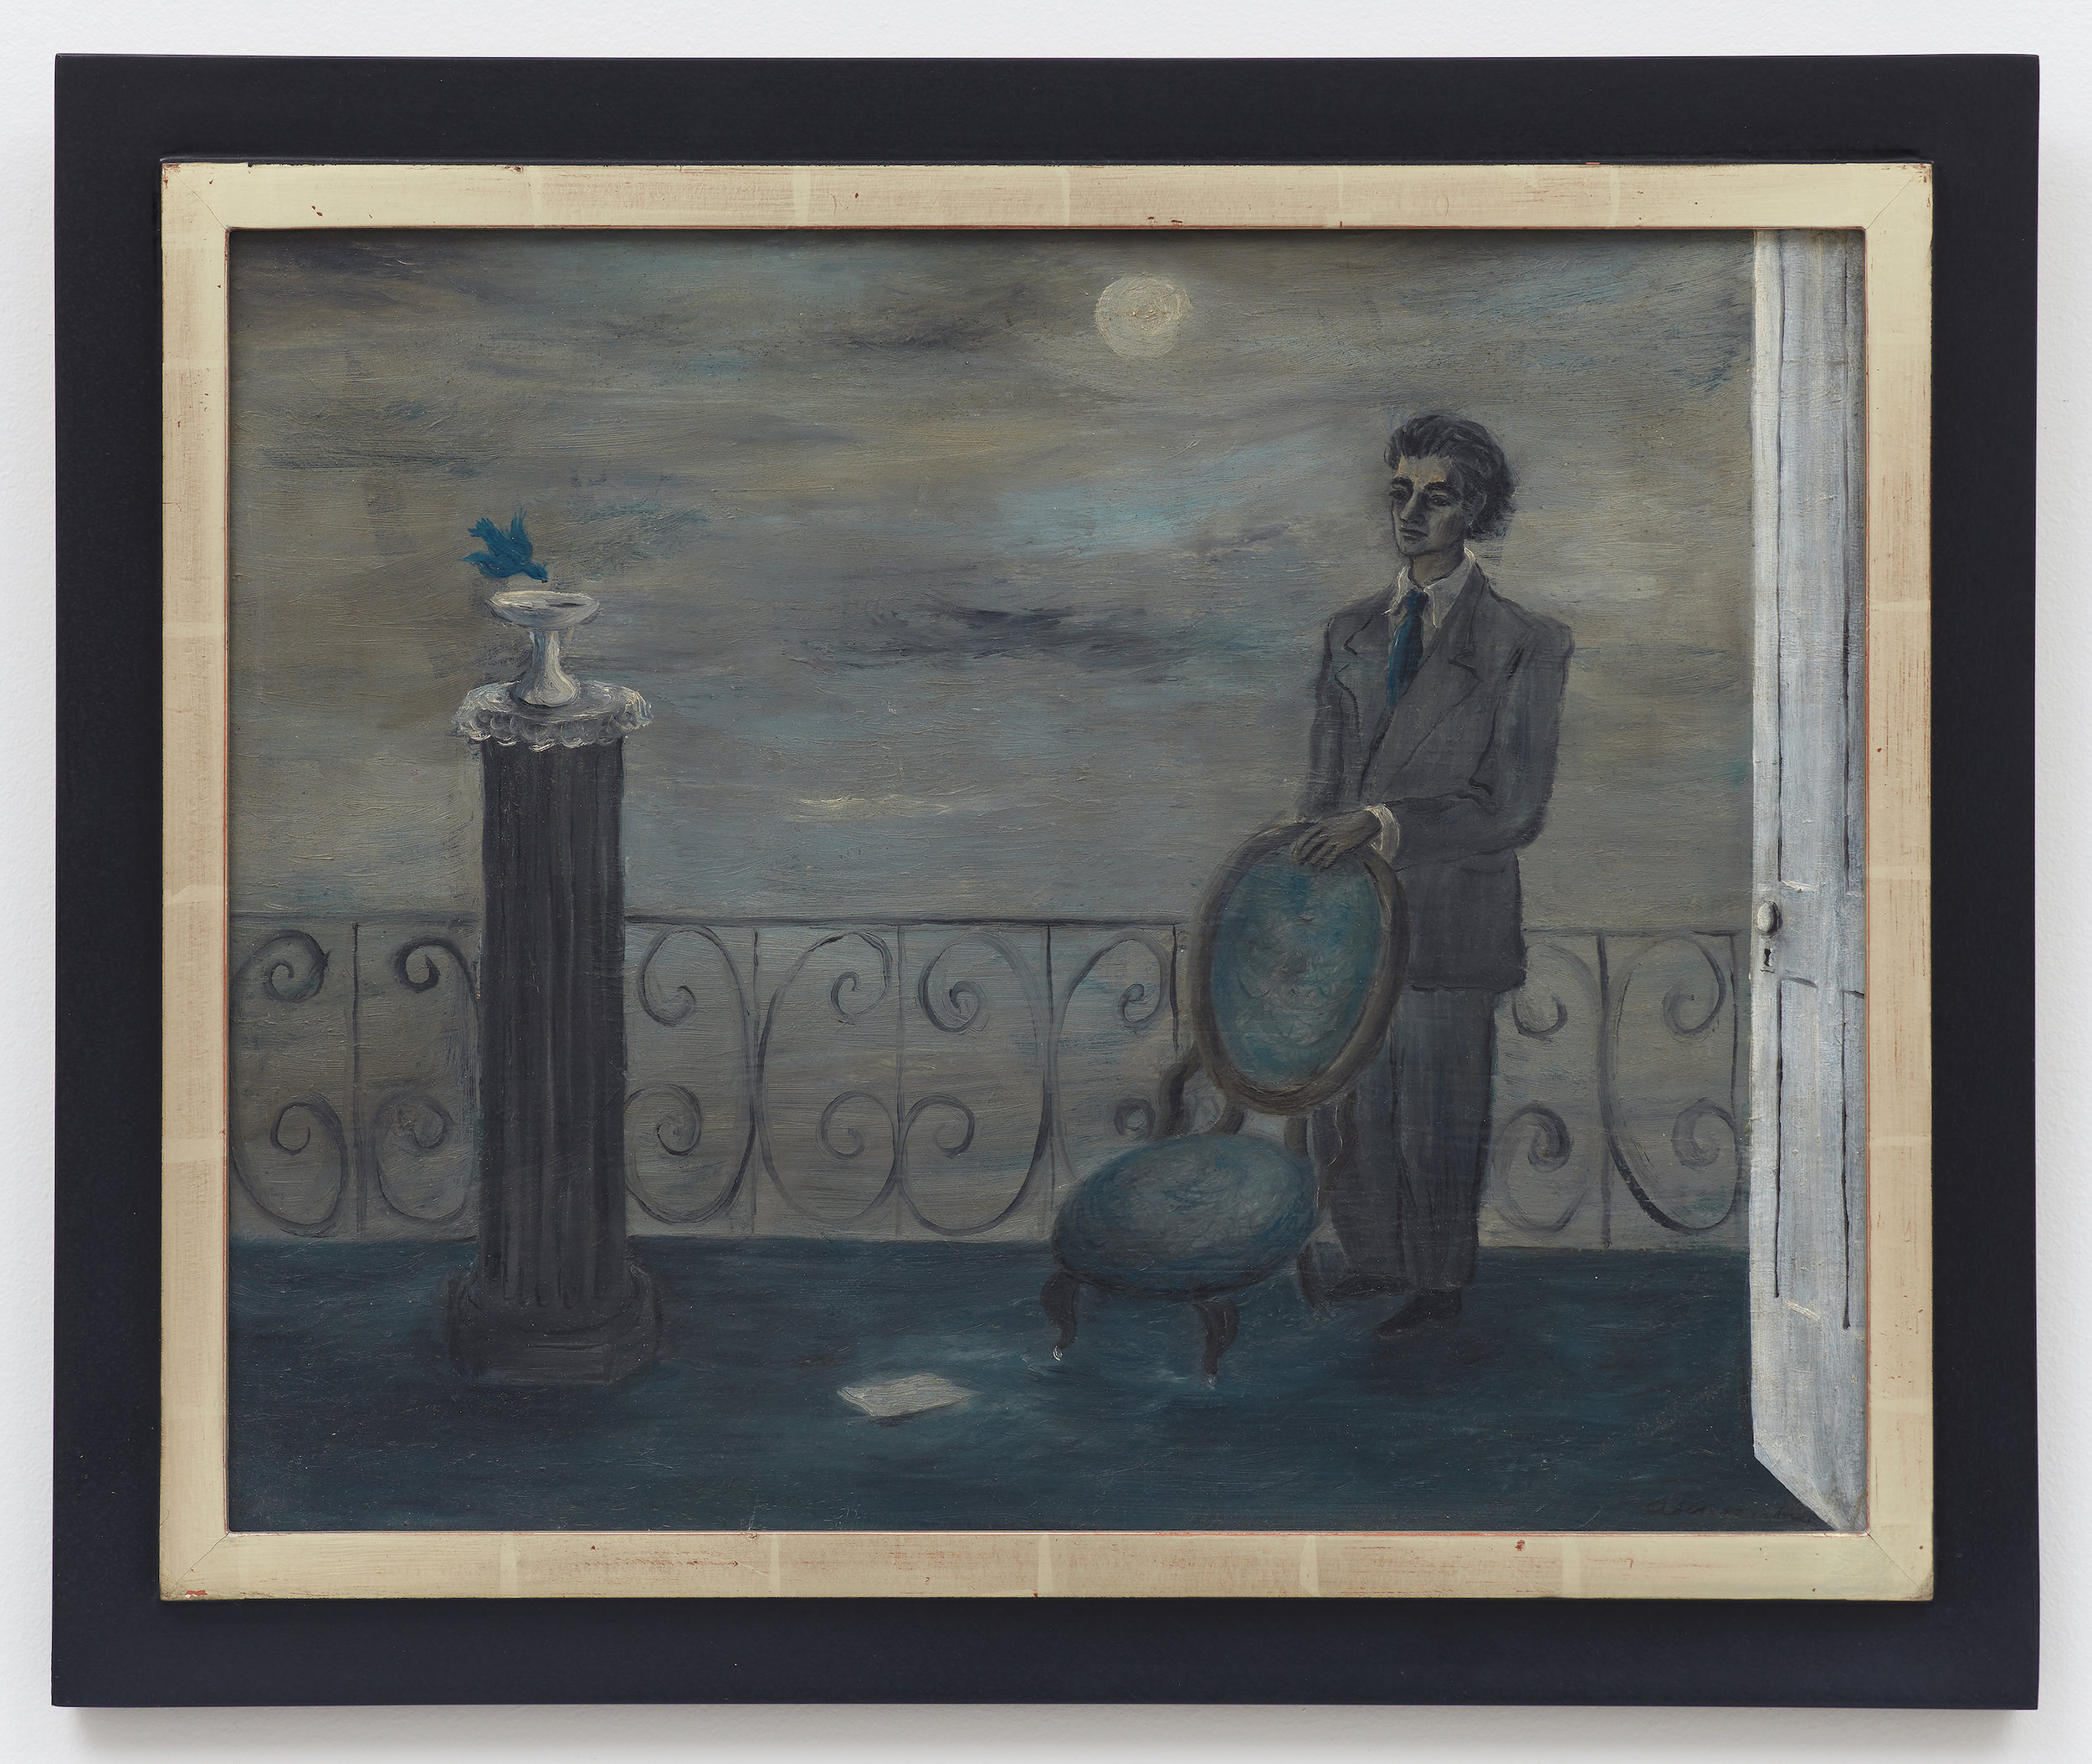 Seated Man , c. 1940, Oil on canvas, 16 × 20 inches (unframed); 19 1/2 × 23 1/2 inches (framed). Collection of Laura and Gary Maurer.